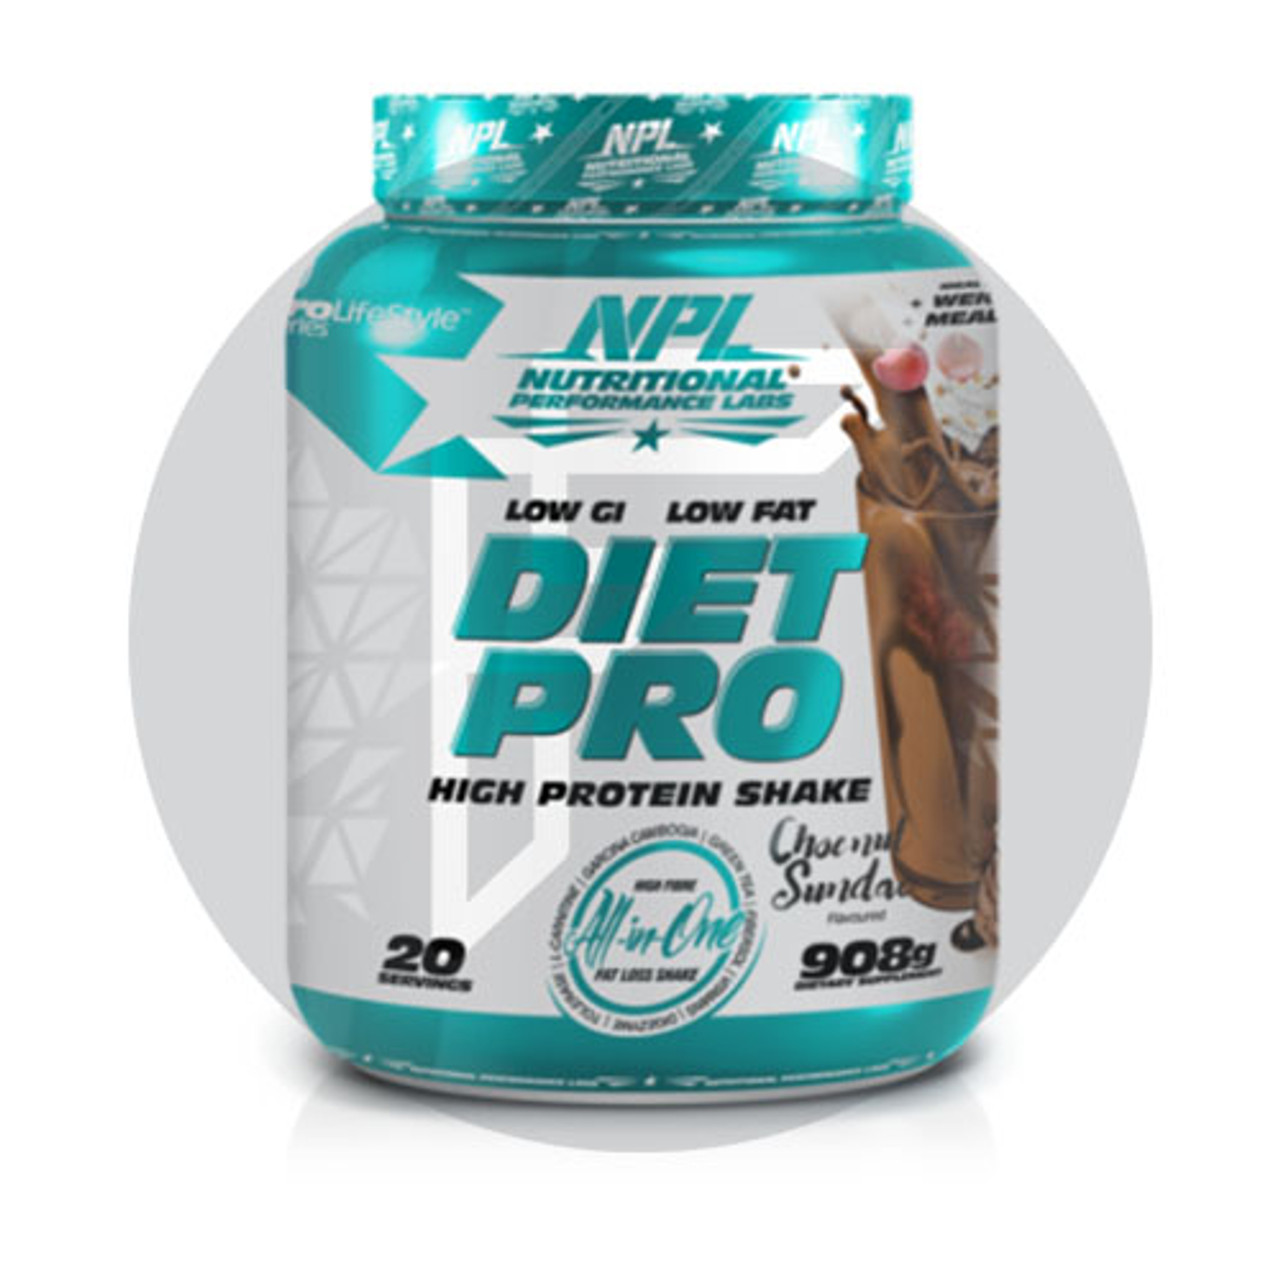 Diet Pro Meal Replacement Shake